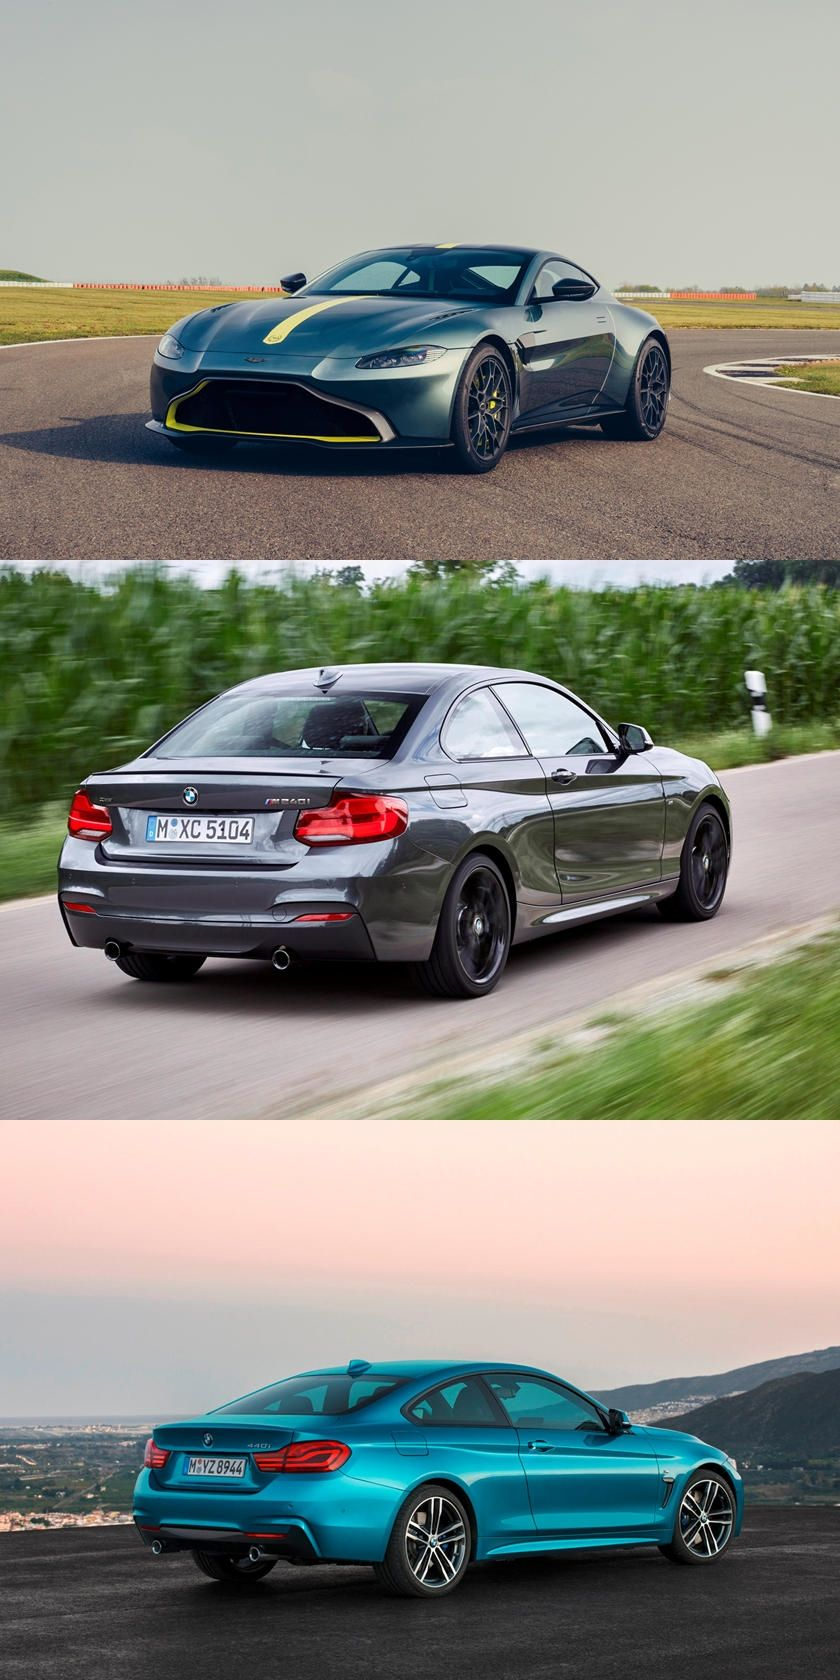 10 Premium Cars With Manual Transmissions In 2020 If You Re Going To Save The Manual Then You Ll Have To Buy One Premium Cars Manual Transmission Automatic Transmission